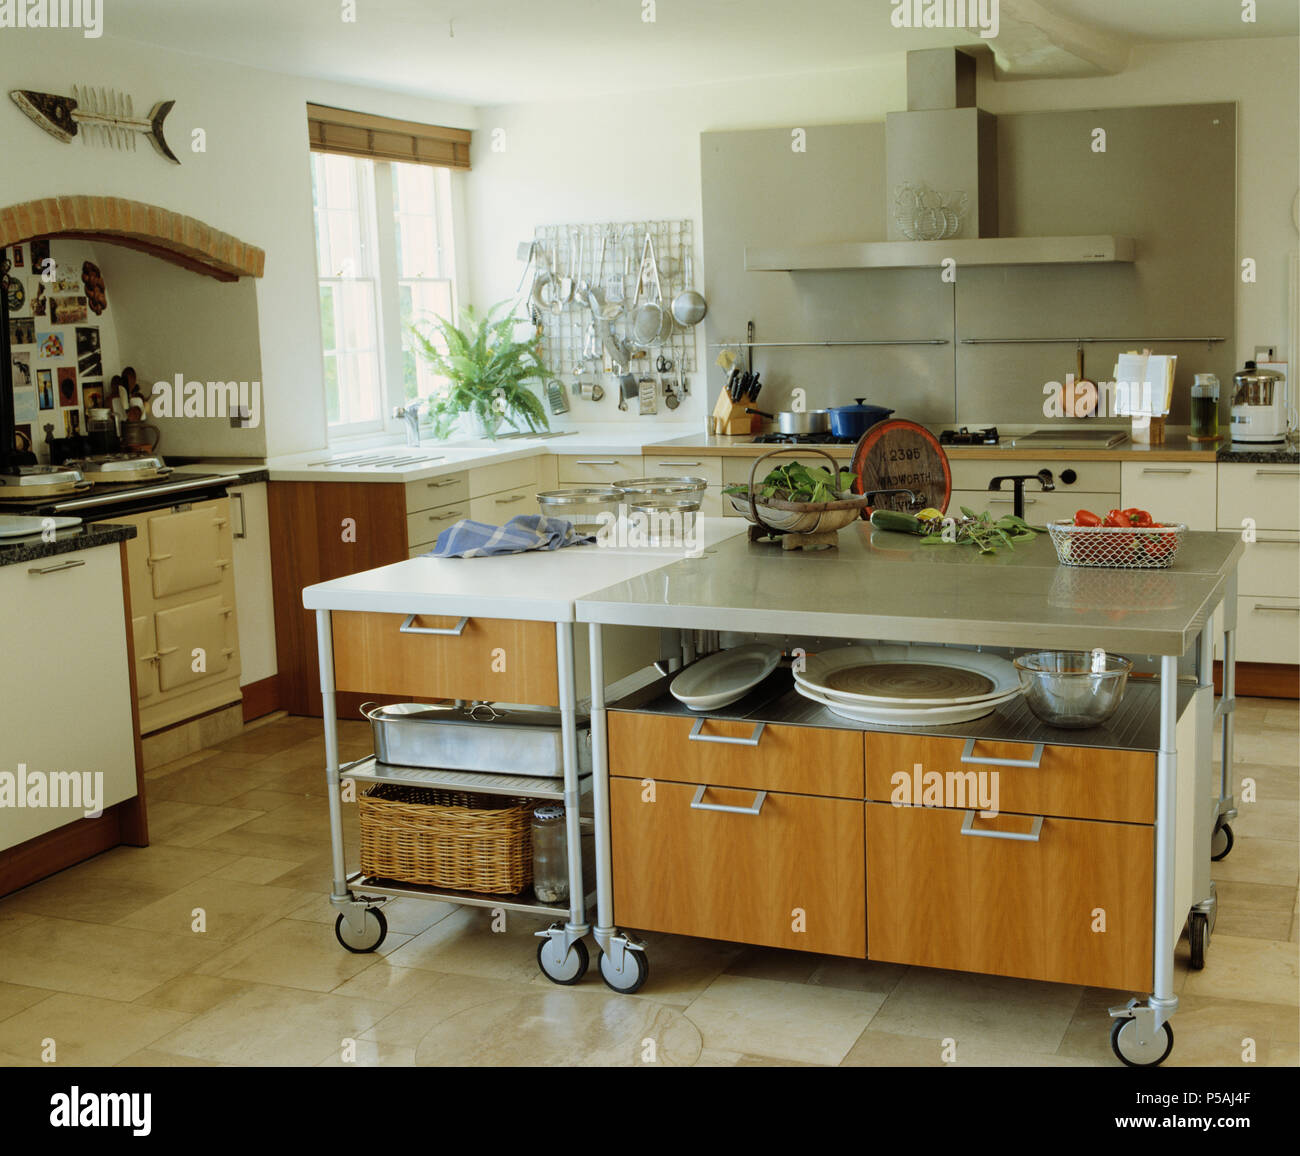 Kitchen Island On Castors Stock Photos & Kitchen Island On ...